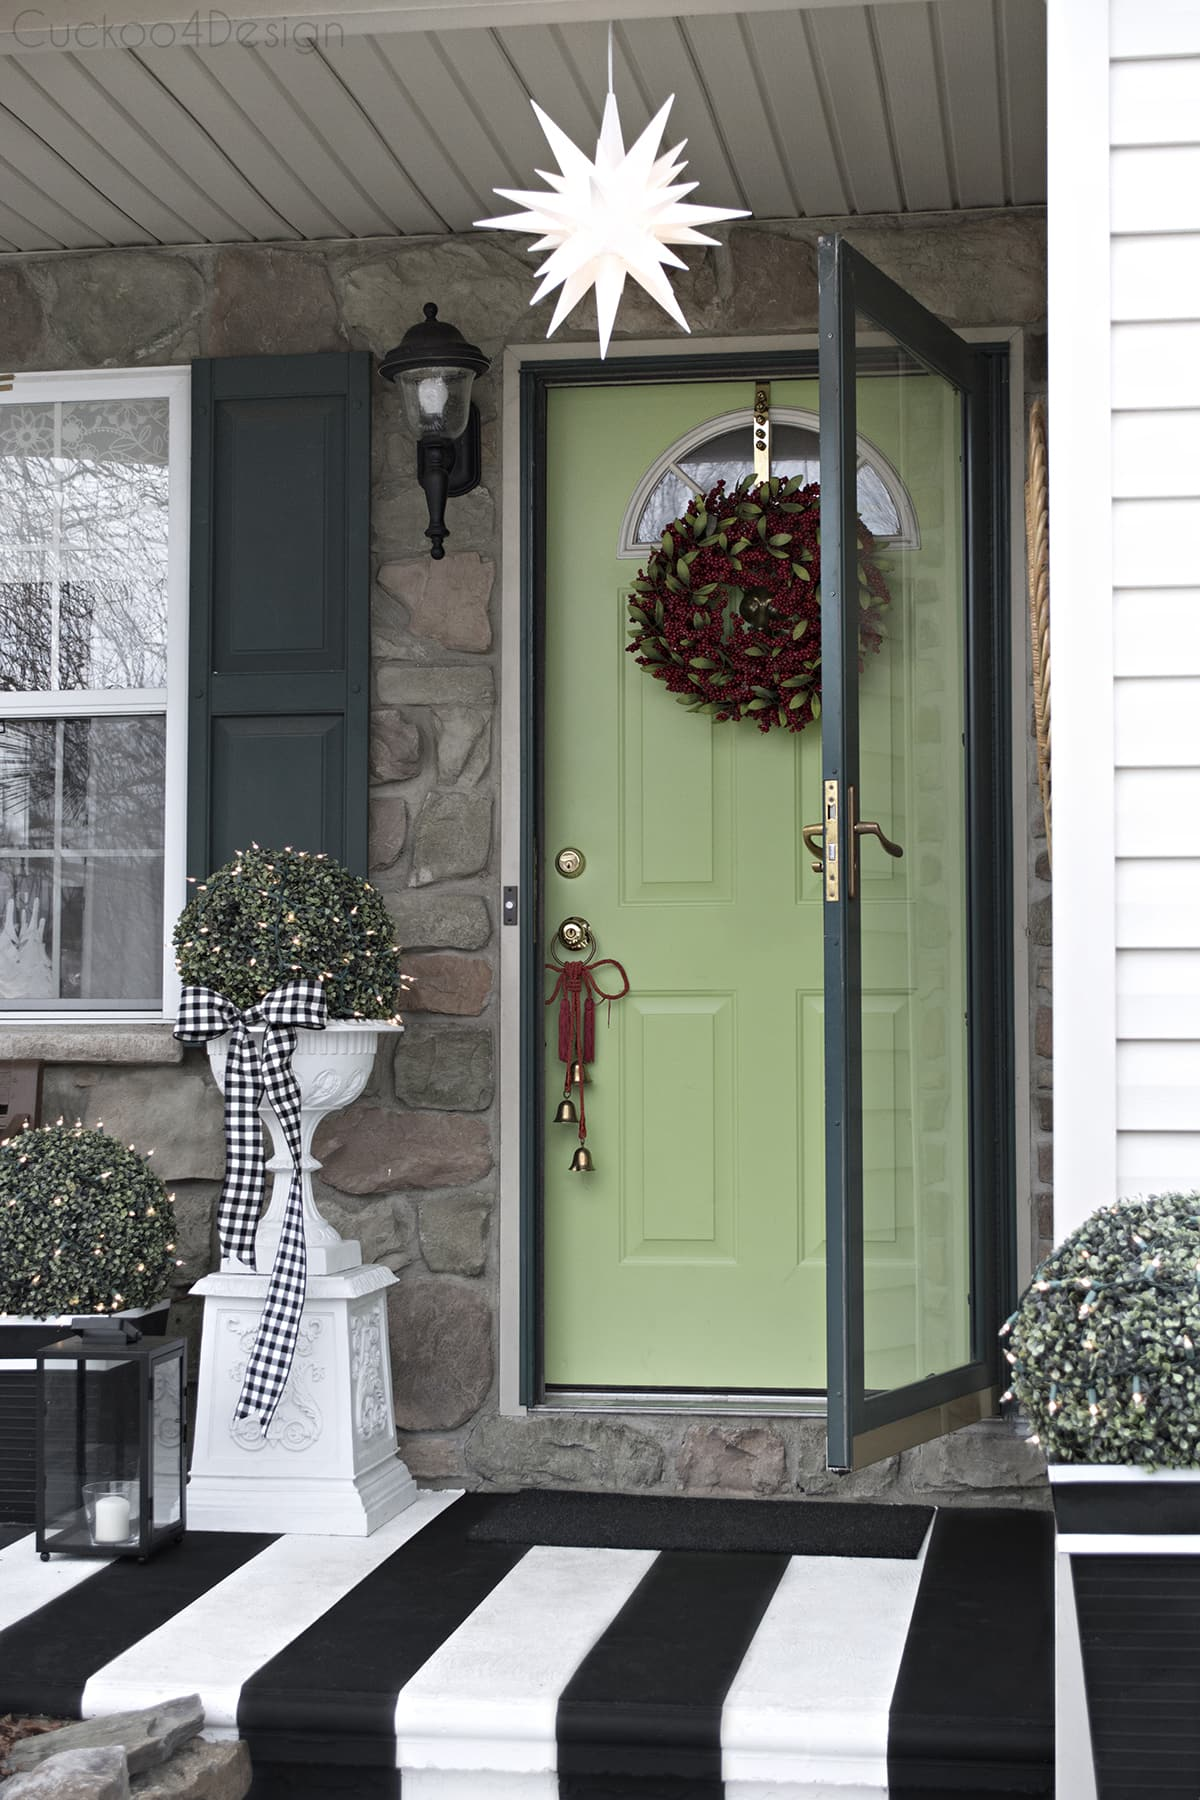 black and white striped porch with lime green door and red wreath